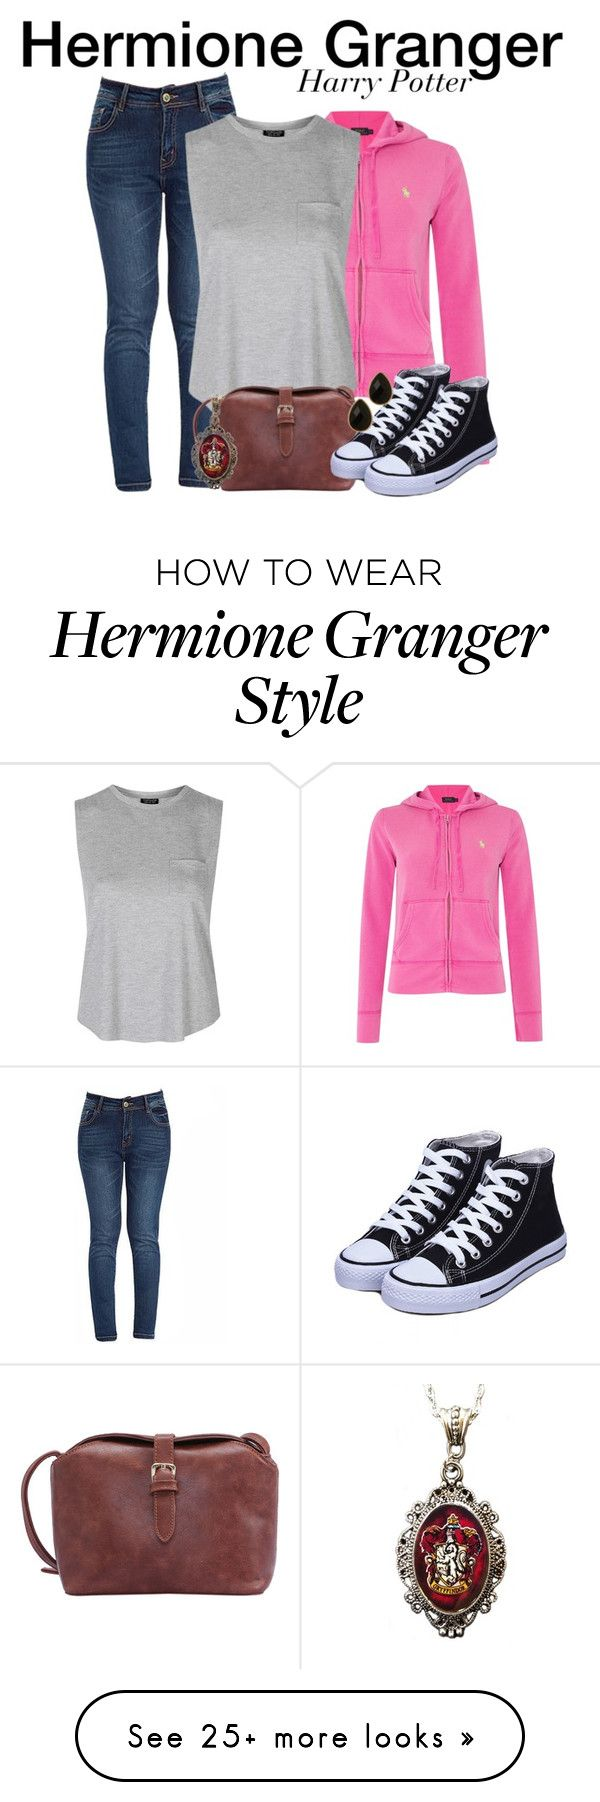 """Hermione Granger - Harry Potter"" by nerd-ville on Polyvore featuring Polo Ralph Lauren, Topshop, Alkemie, Natasha Accessories, women's clothing, women, female, woman, misses and juniors"